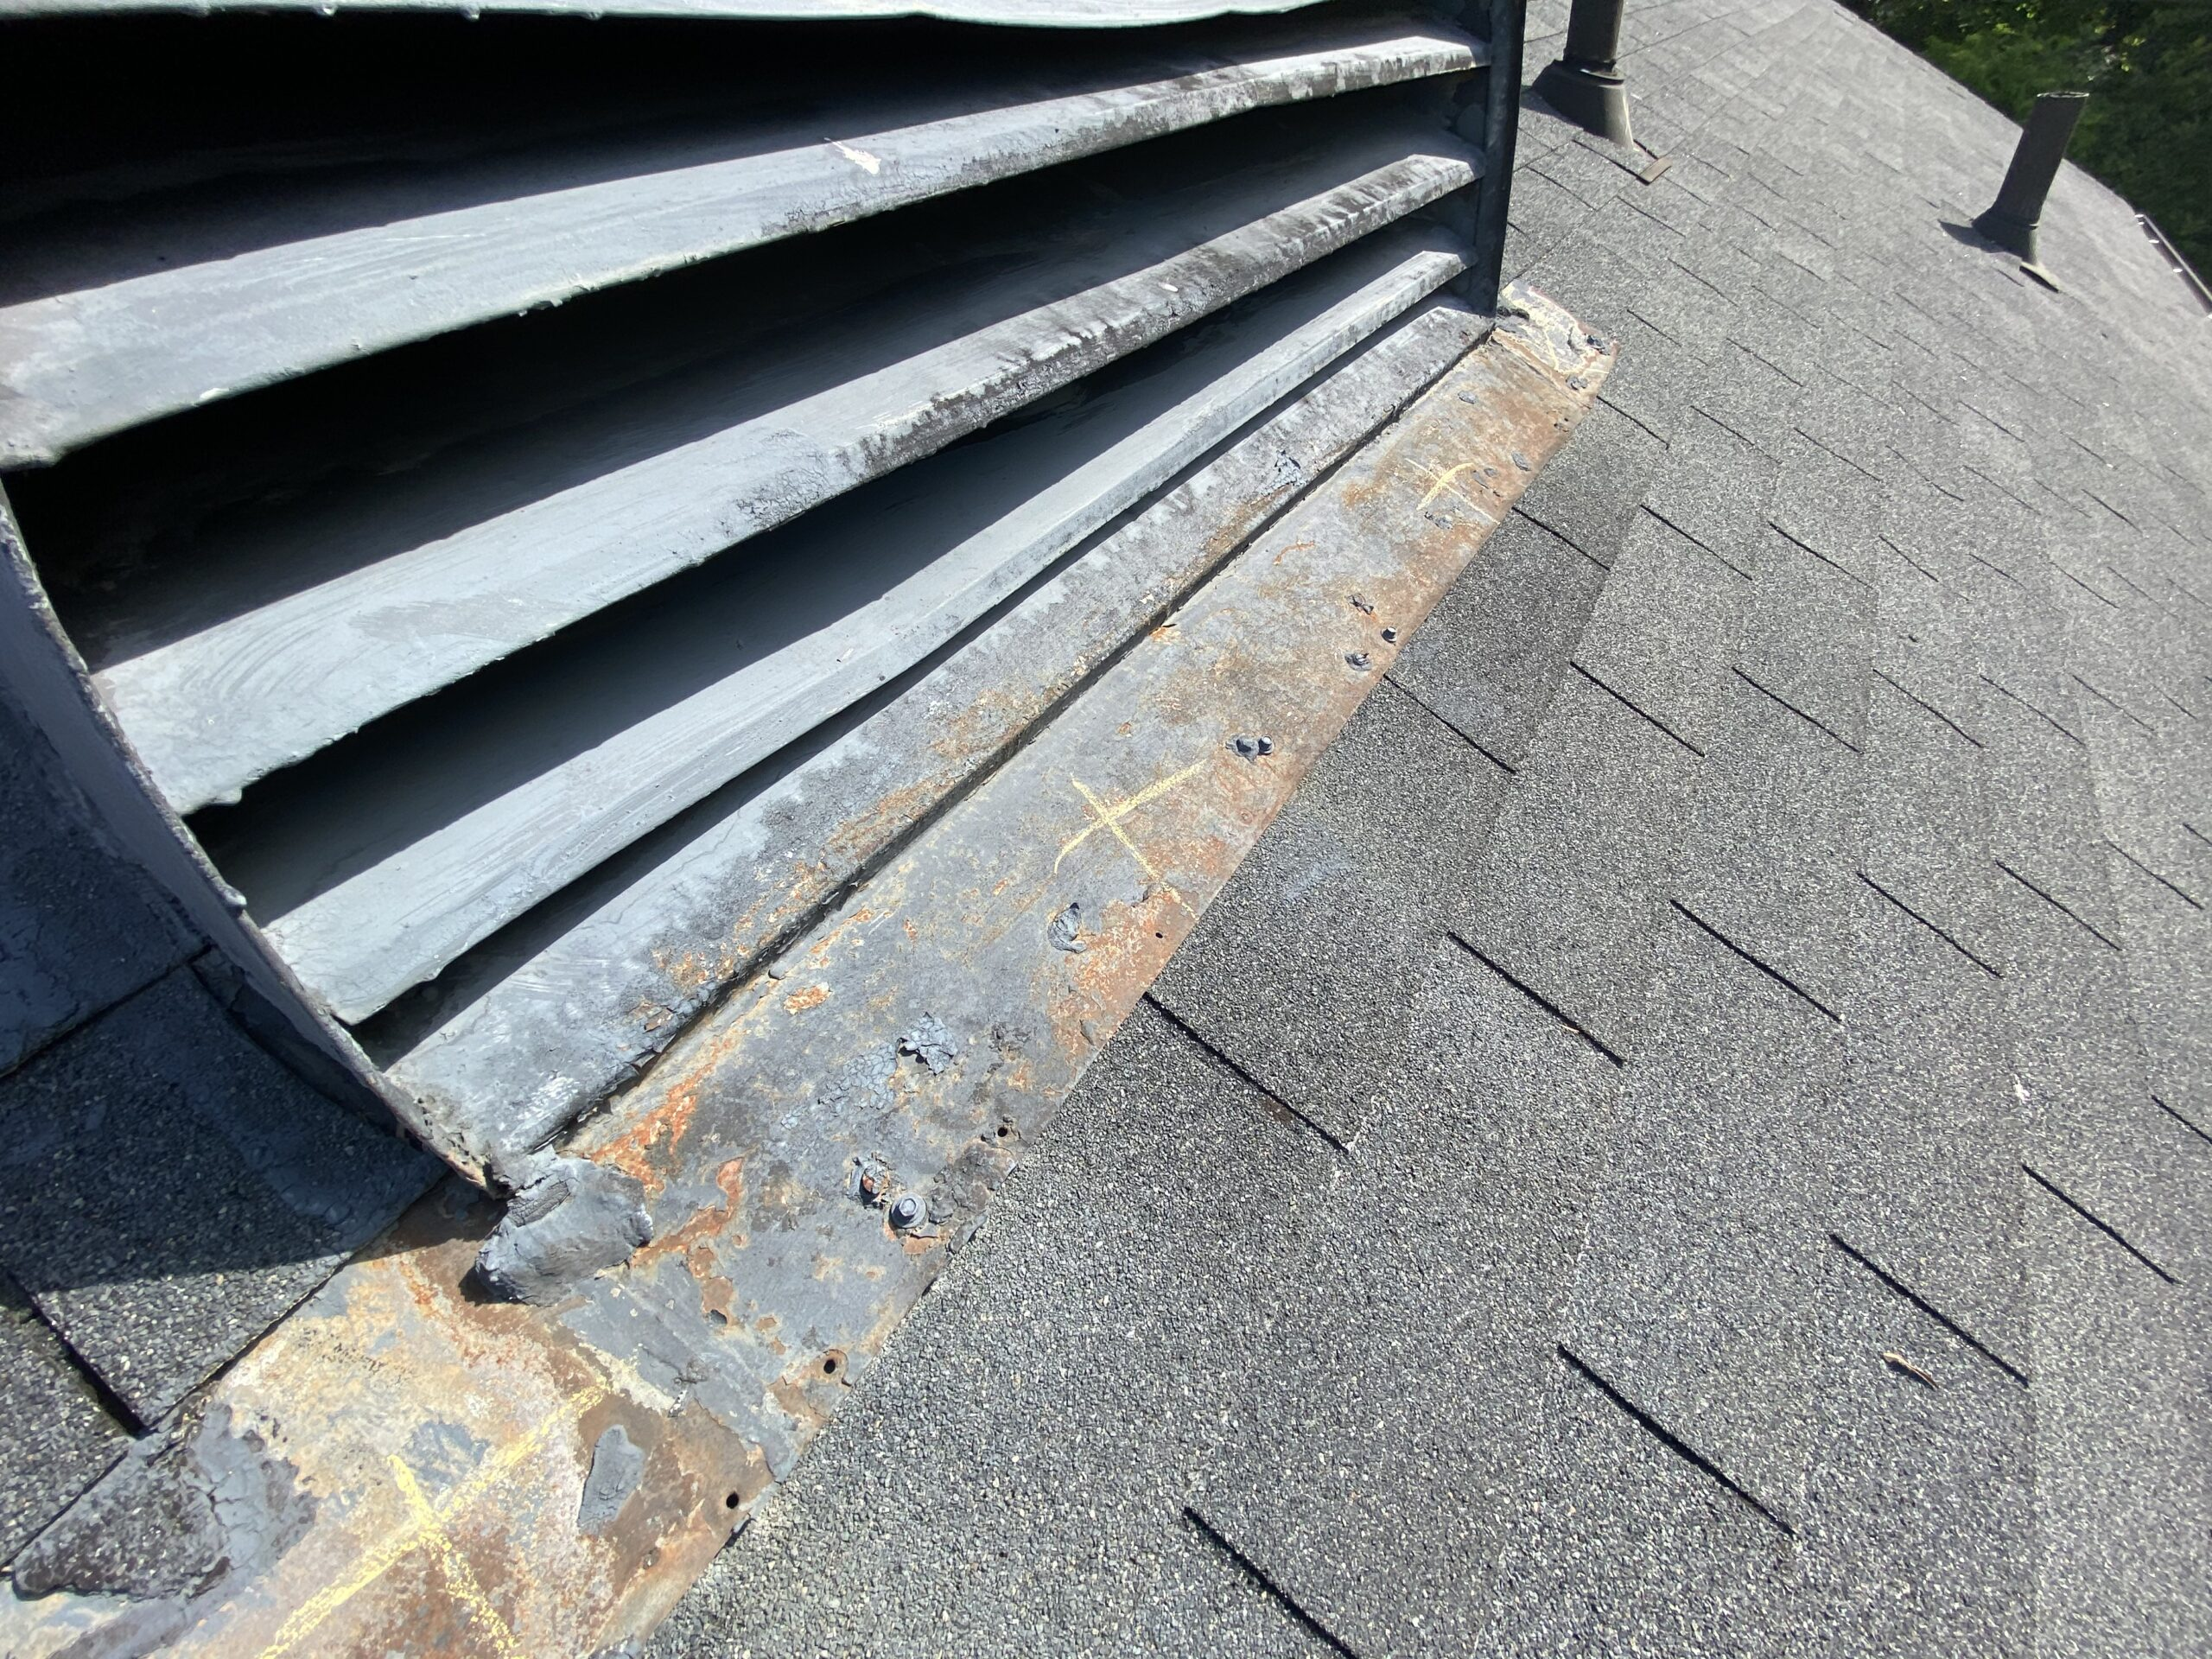 This is a picture of an old roof vent with seams that are cracking